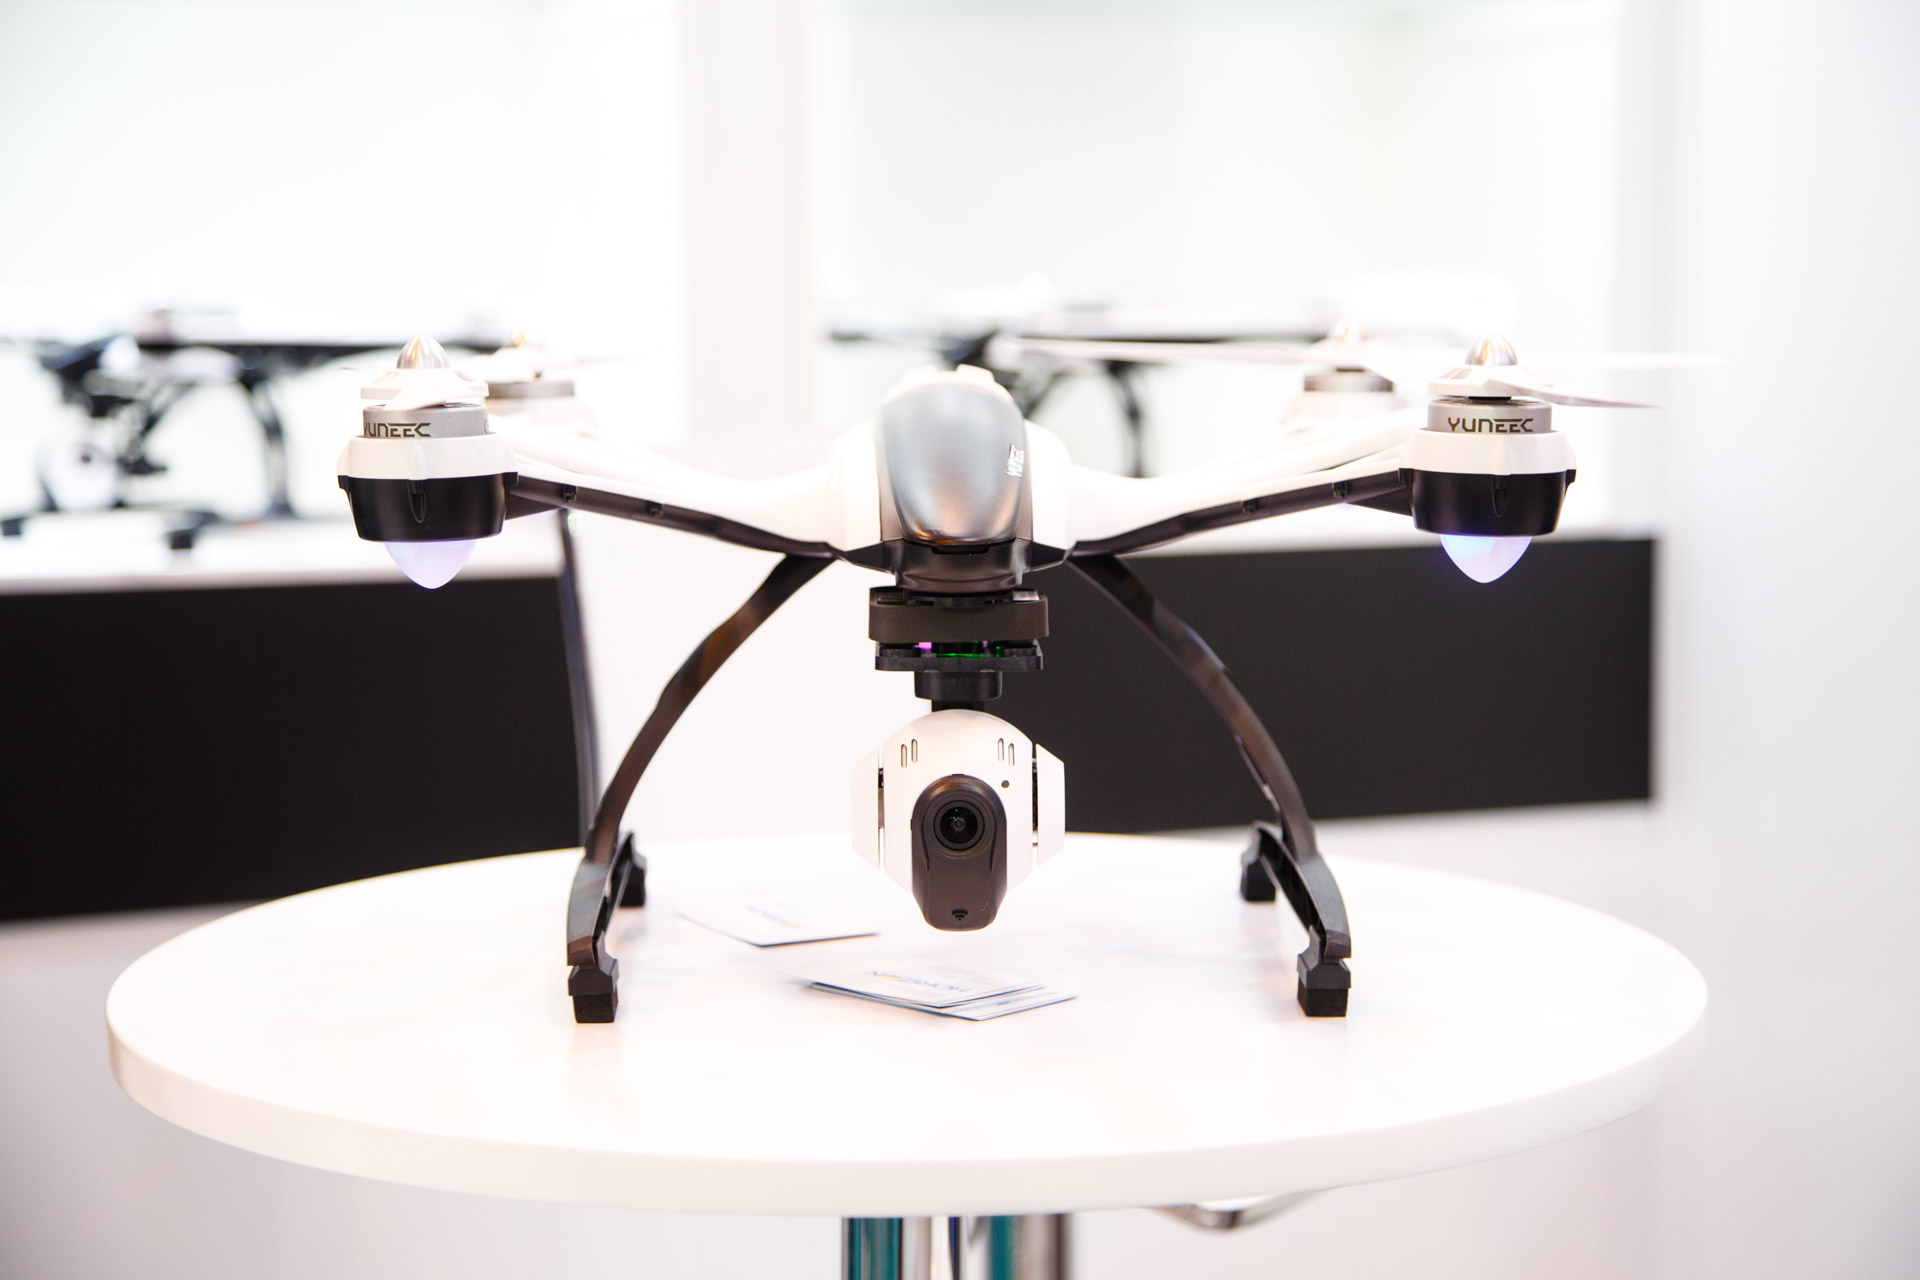 The Photography Show 2015 (32) Drone.jpg